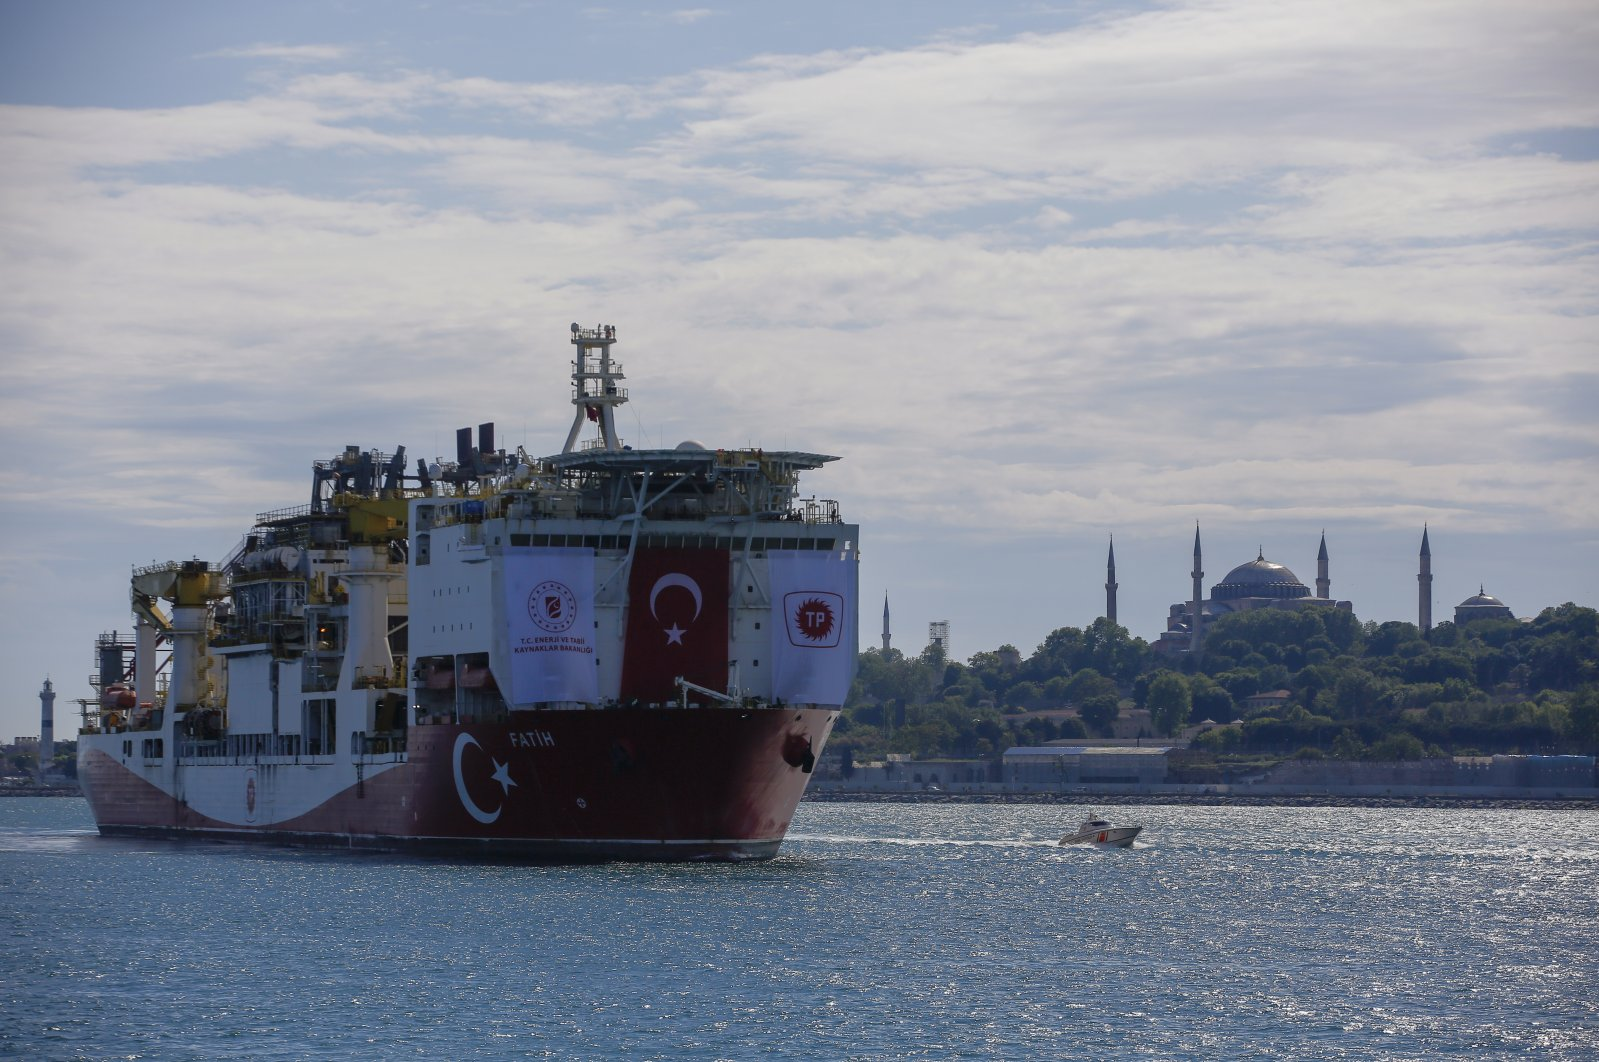 Turkey's drilling ship, Fatih, heads toward the Black Sea with Hagia Sophia Grand Mosque in the background, Istanbul, Turkey, May 29, 2020. (AP Photo)